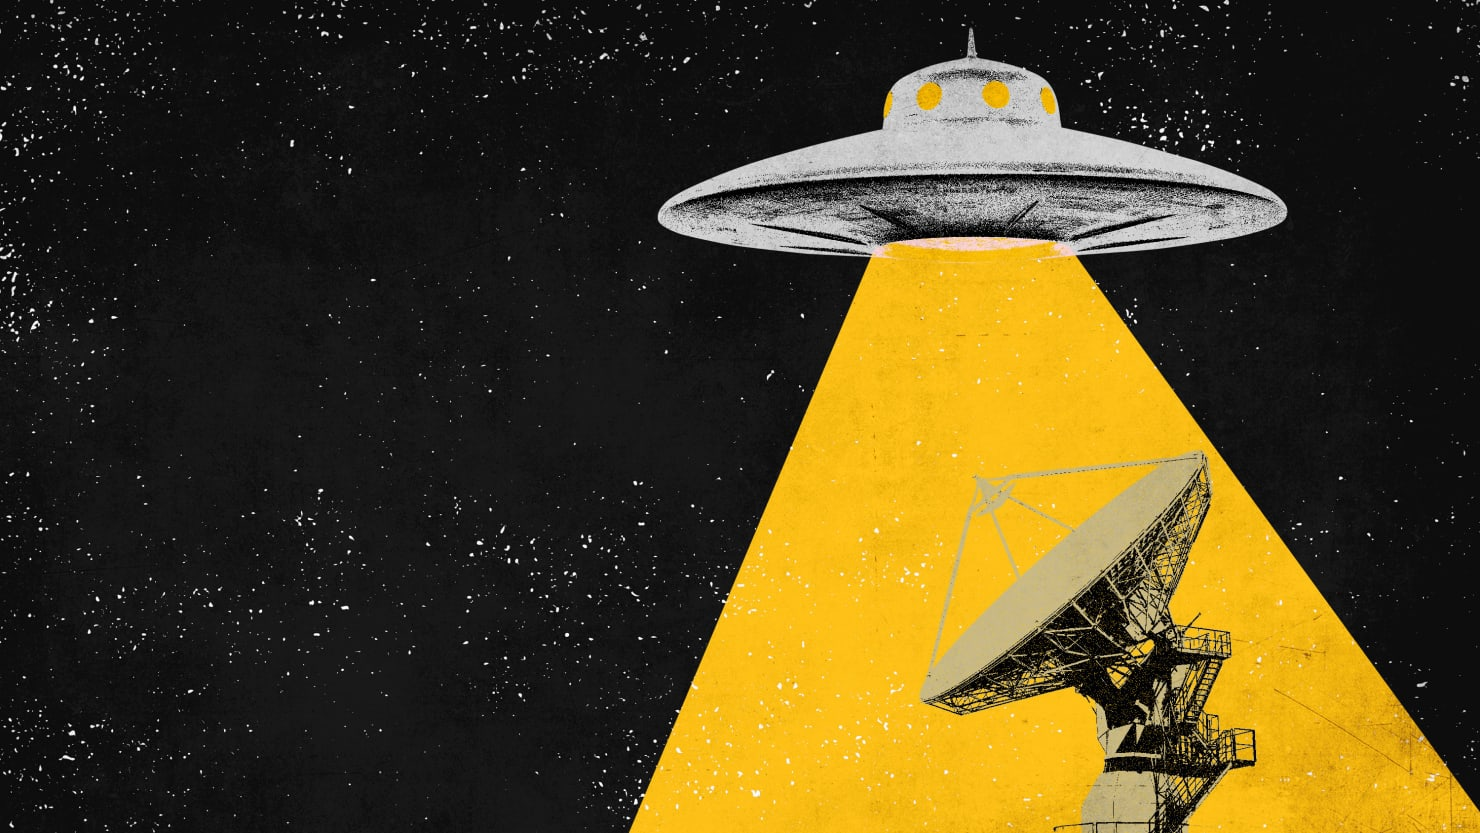 The Blc1 Alien Radio Signal From Proxima Centauri Found by Breakthrough Listen Finally Gets Explained